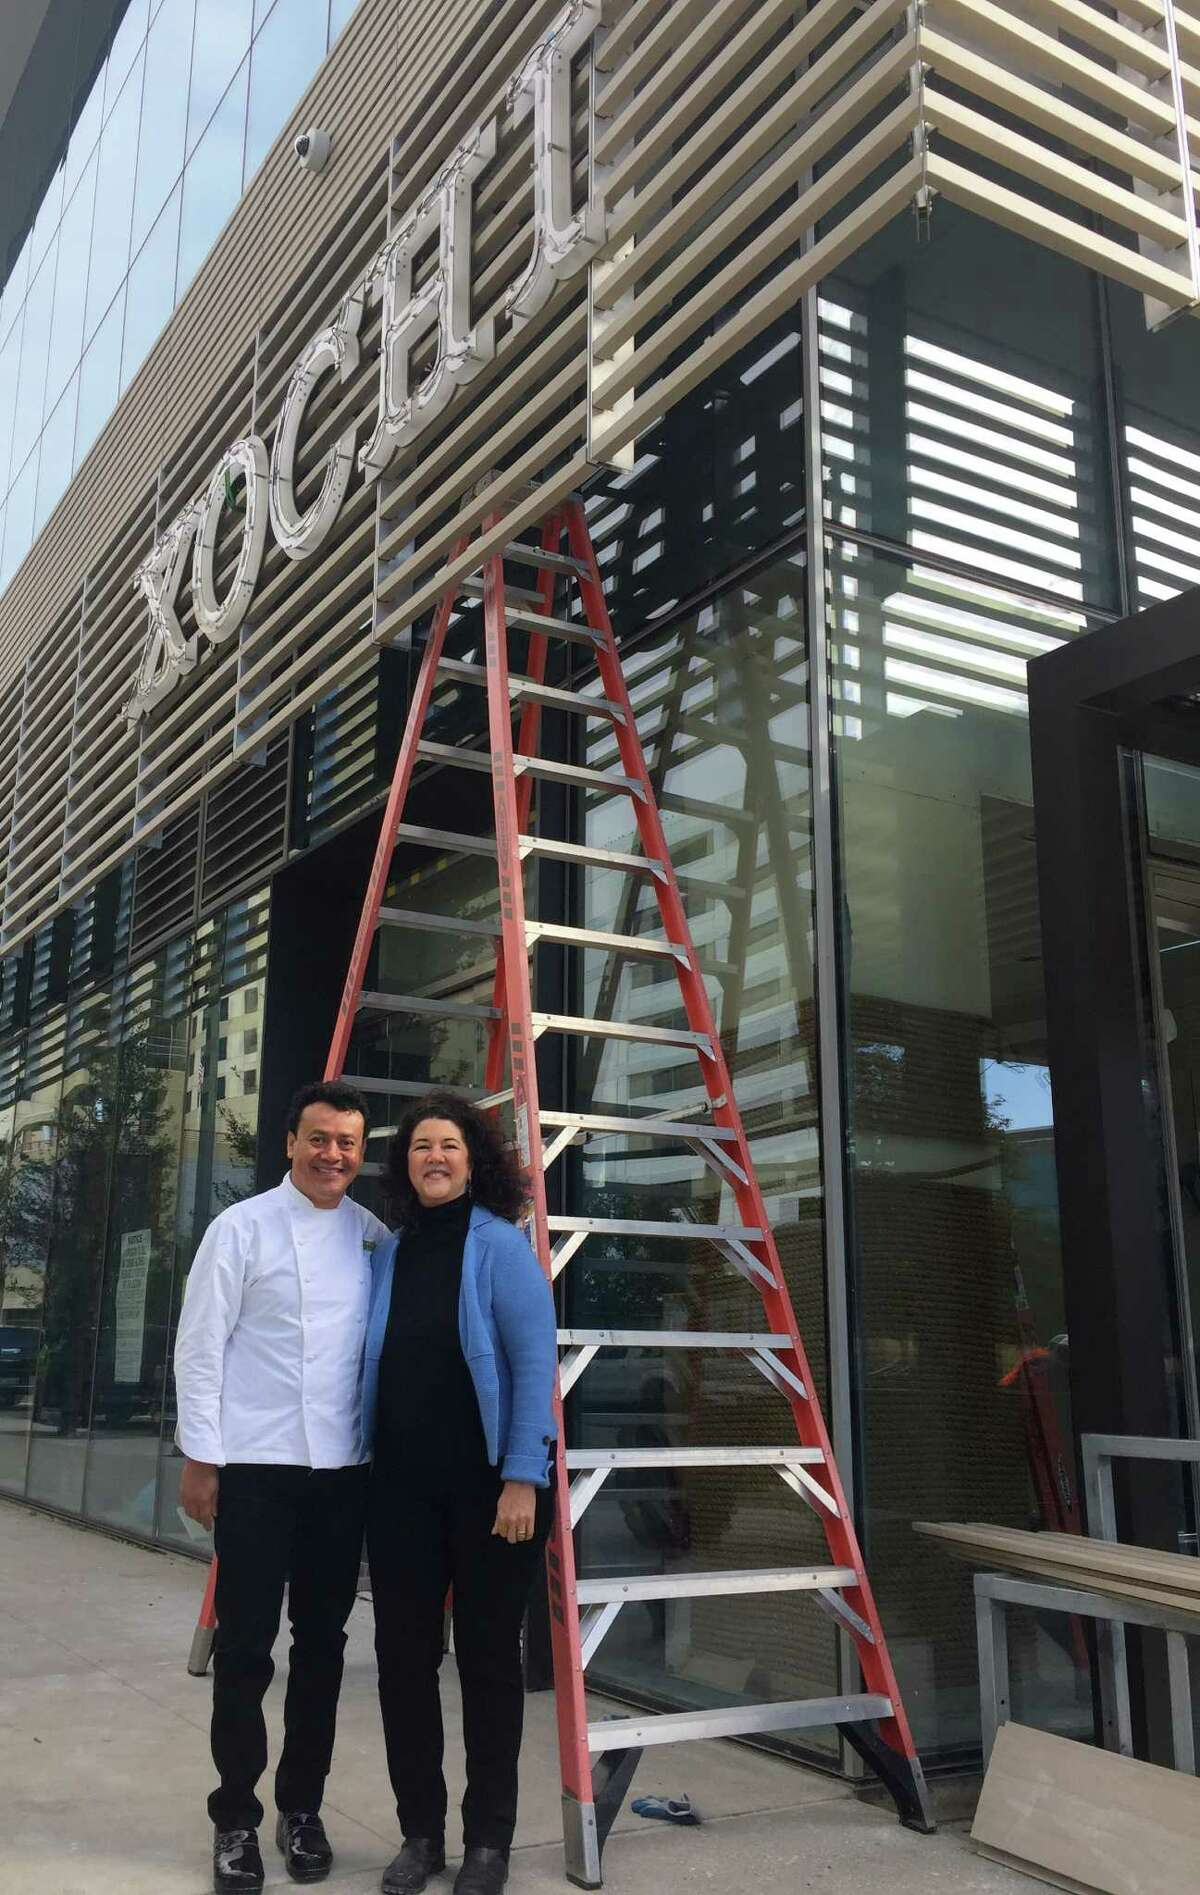 Chef Hugo Ortega, and Tracy Vaught, are co-owners of the H Town Restaurant Group. Vaught was listed among the semifinalists for the 2017 James Beard Award for Outstanding Restaurateur. Ortega is a semifinalist for Best Chef Southwest. They are shown here in front of their new Xochi restaurant in the Marriott Marquis Houston.